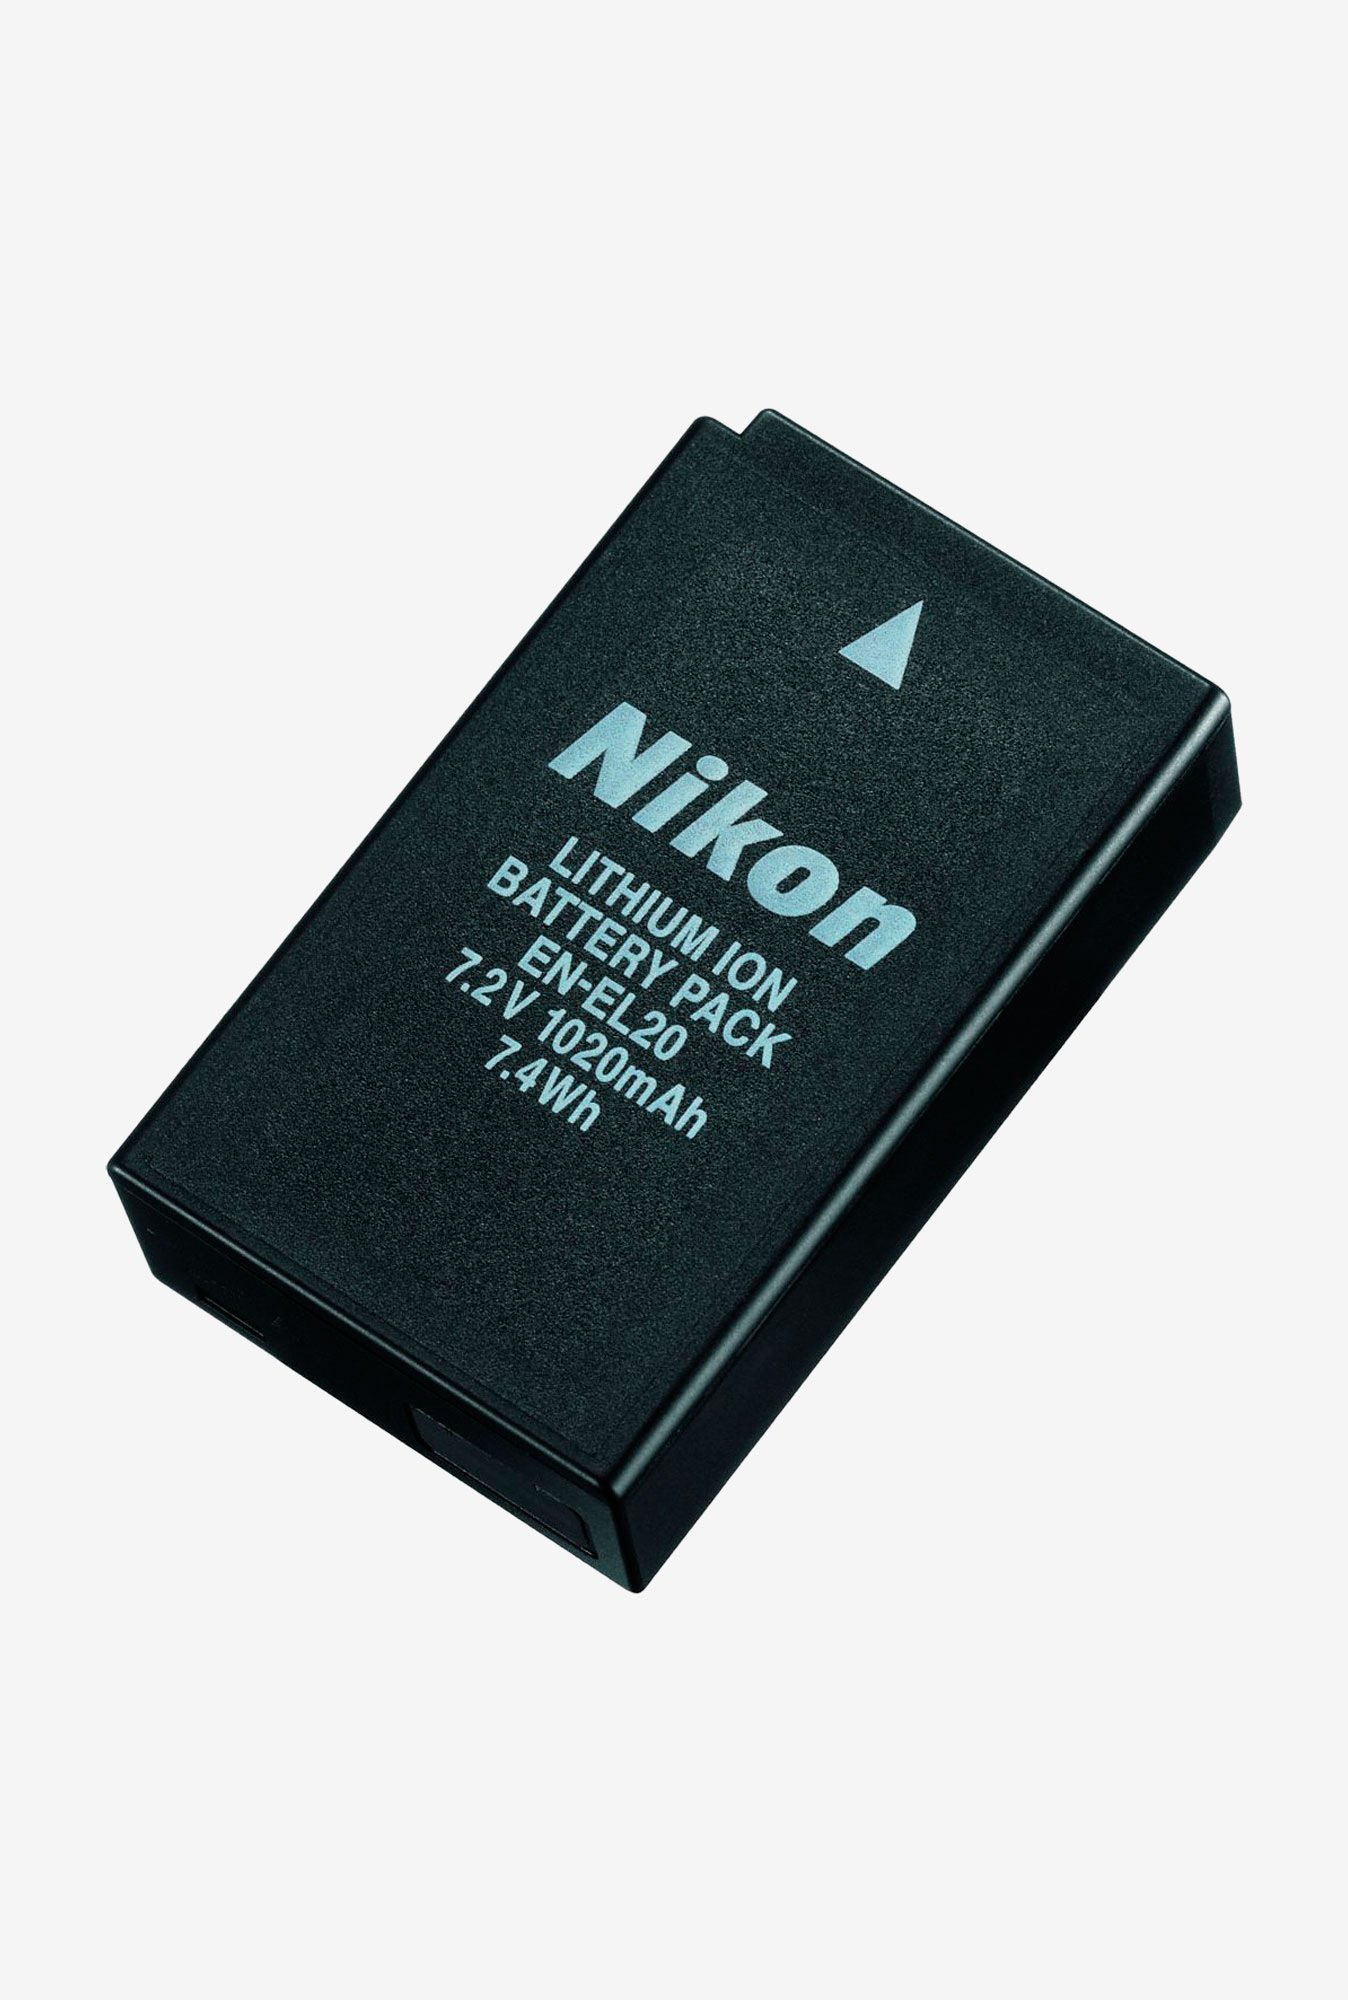 Nikon Rechargeable Li-Ion Battery